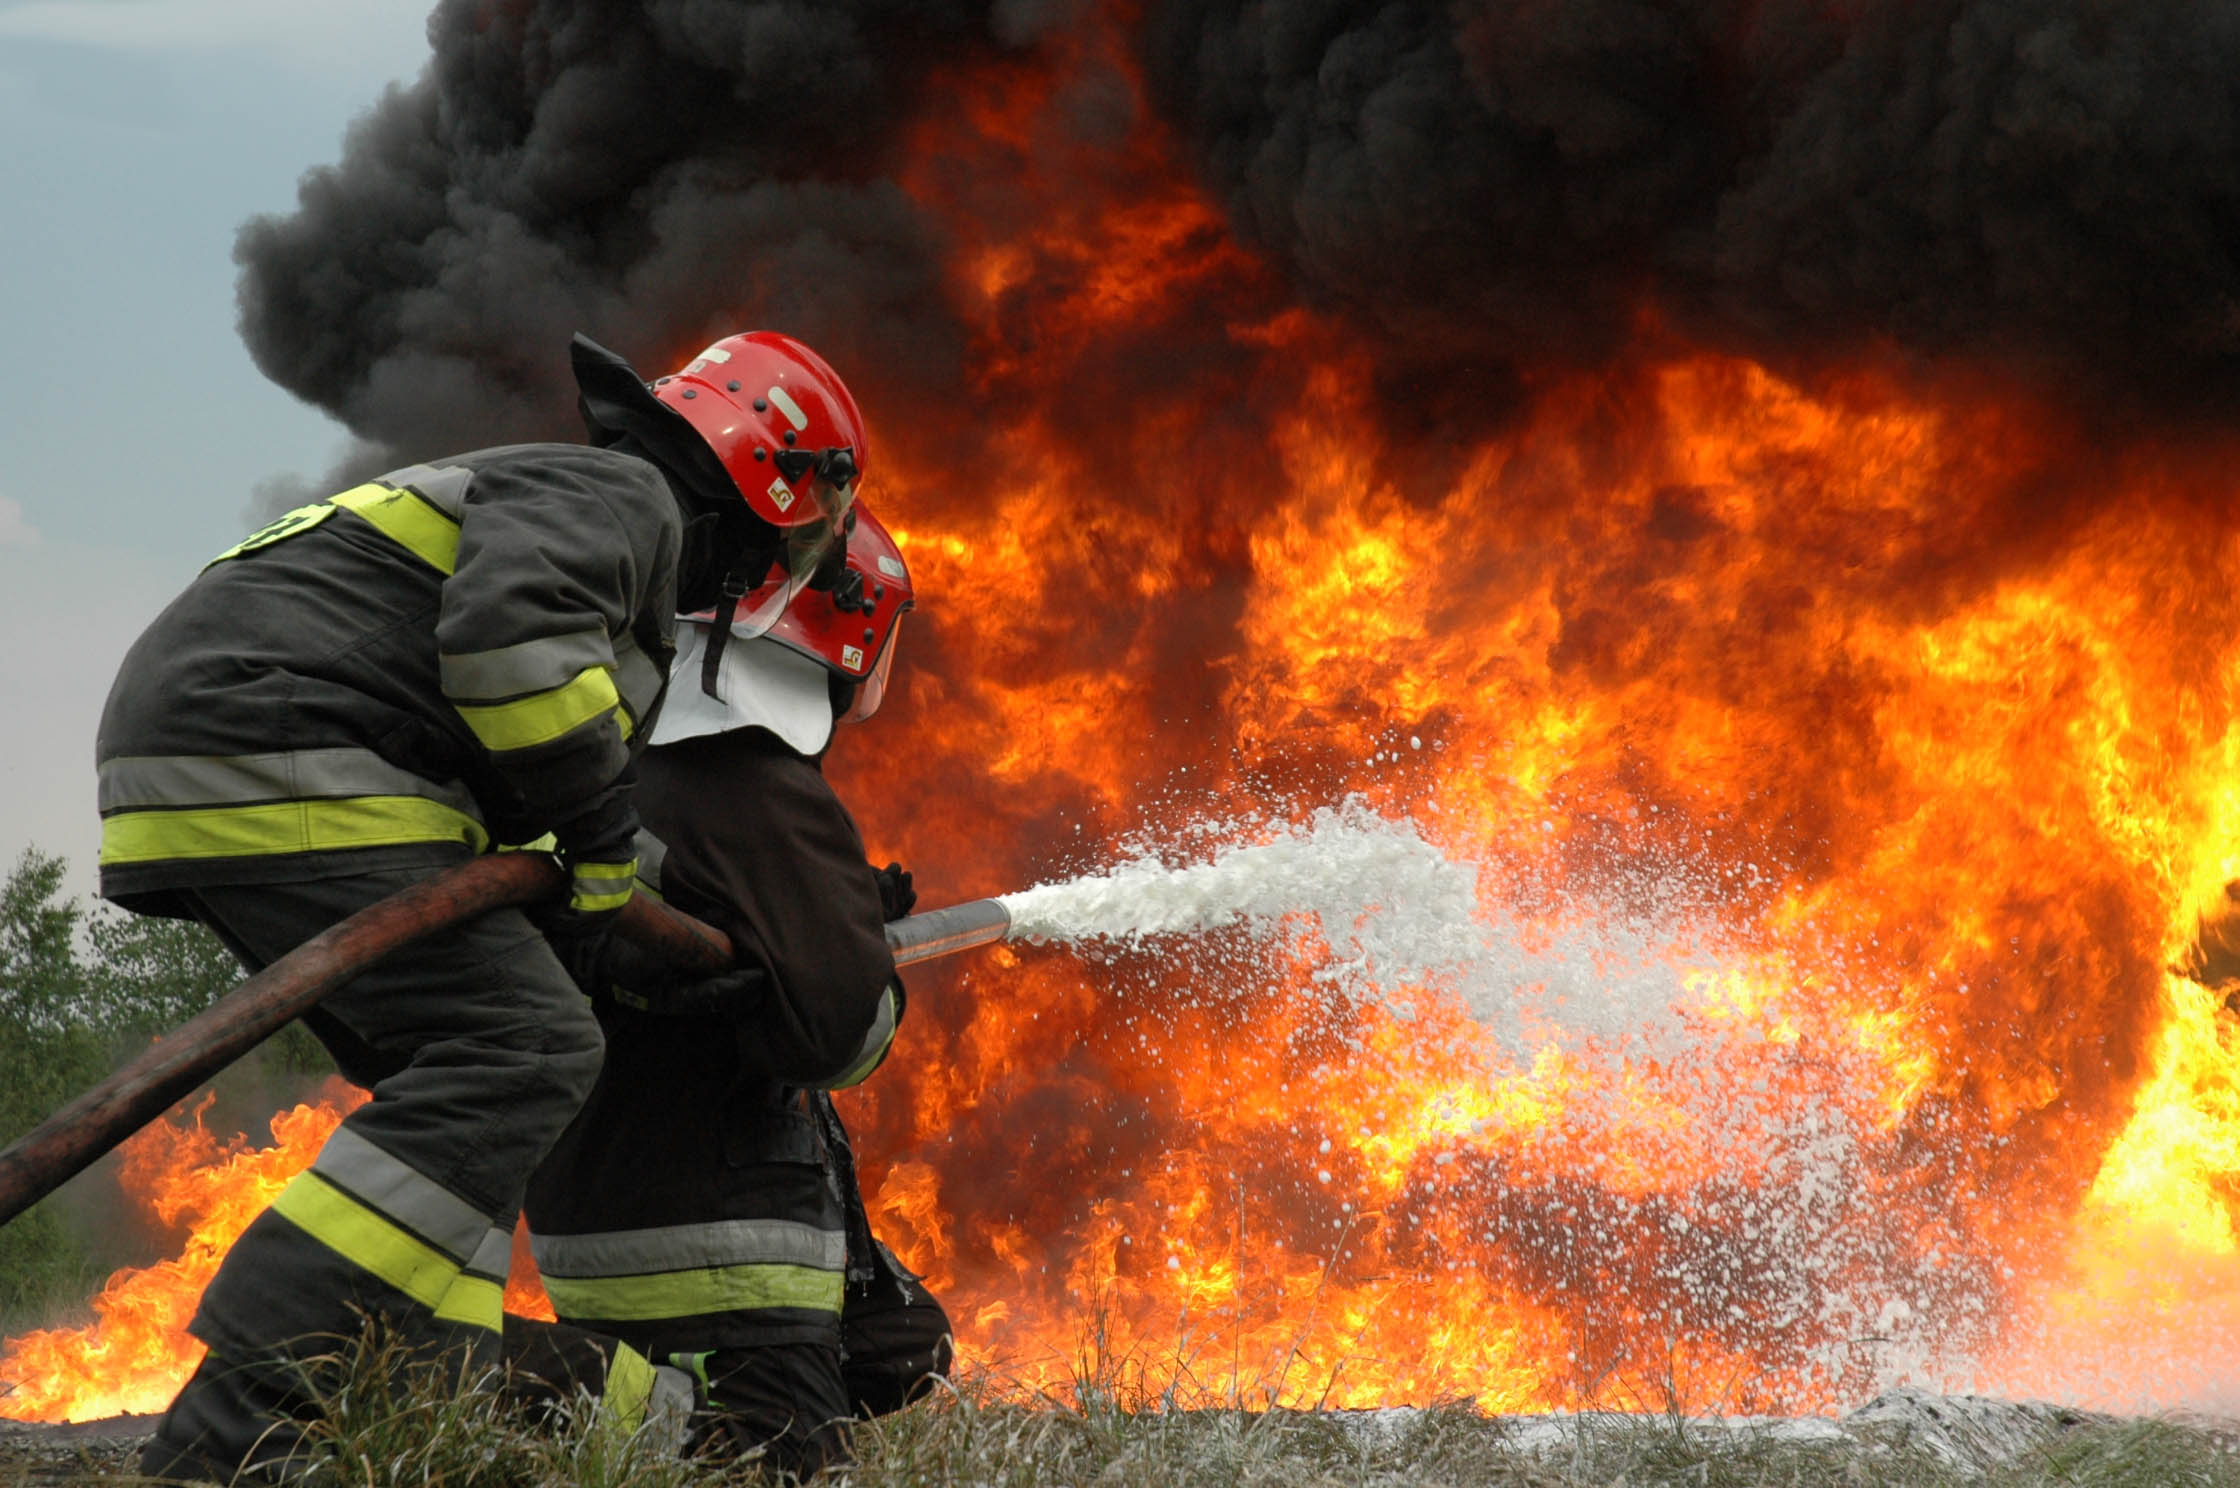 Firefighters attempt to extinguish flames in Maribor's recycling plant